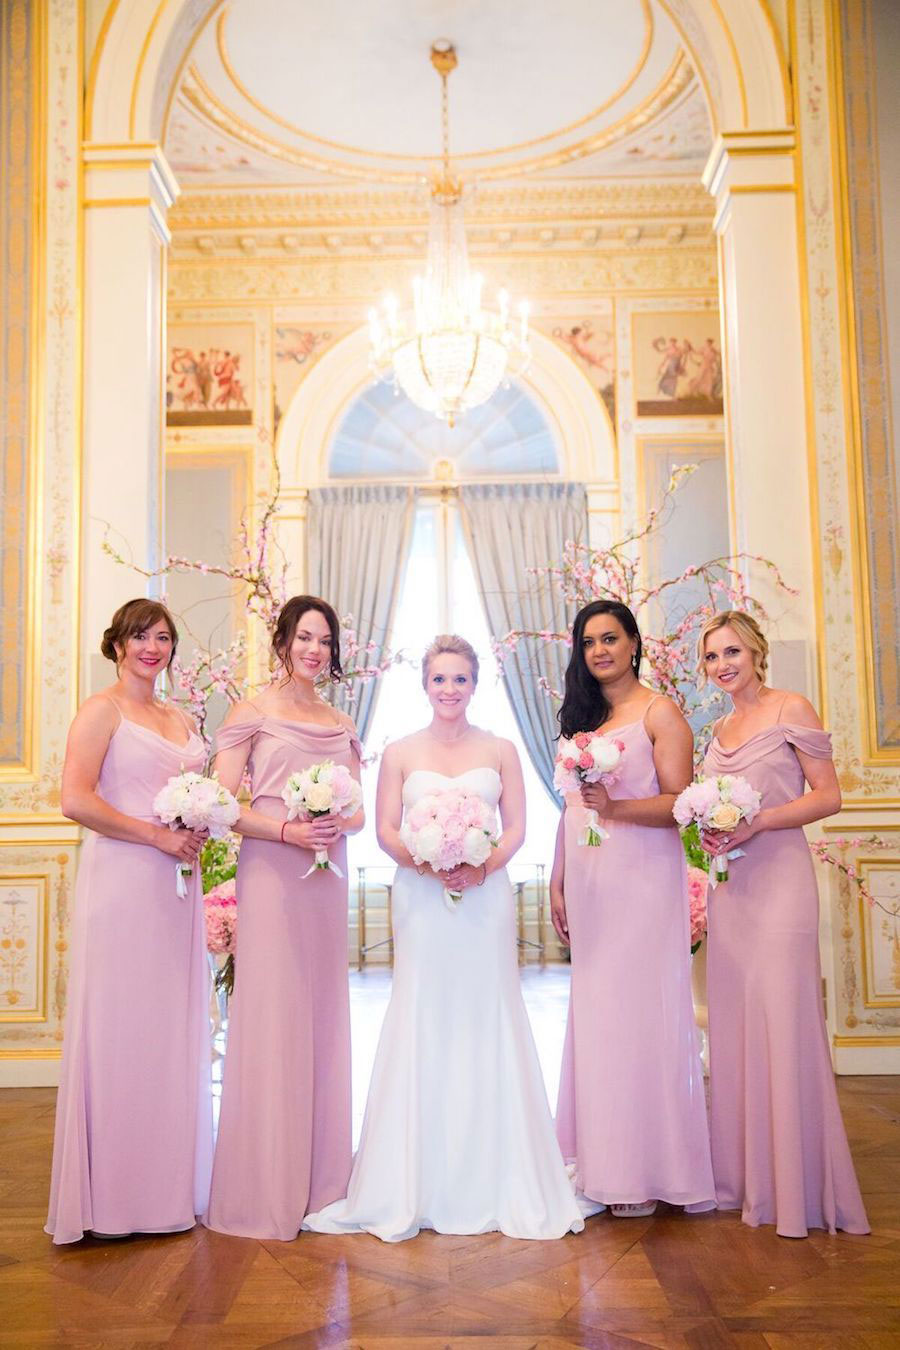 Parisian Pink & Gold Wedding With Pretty Cherry Blossom Arch0030